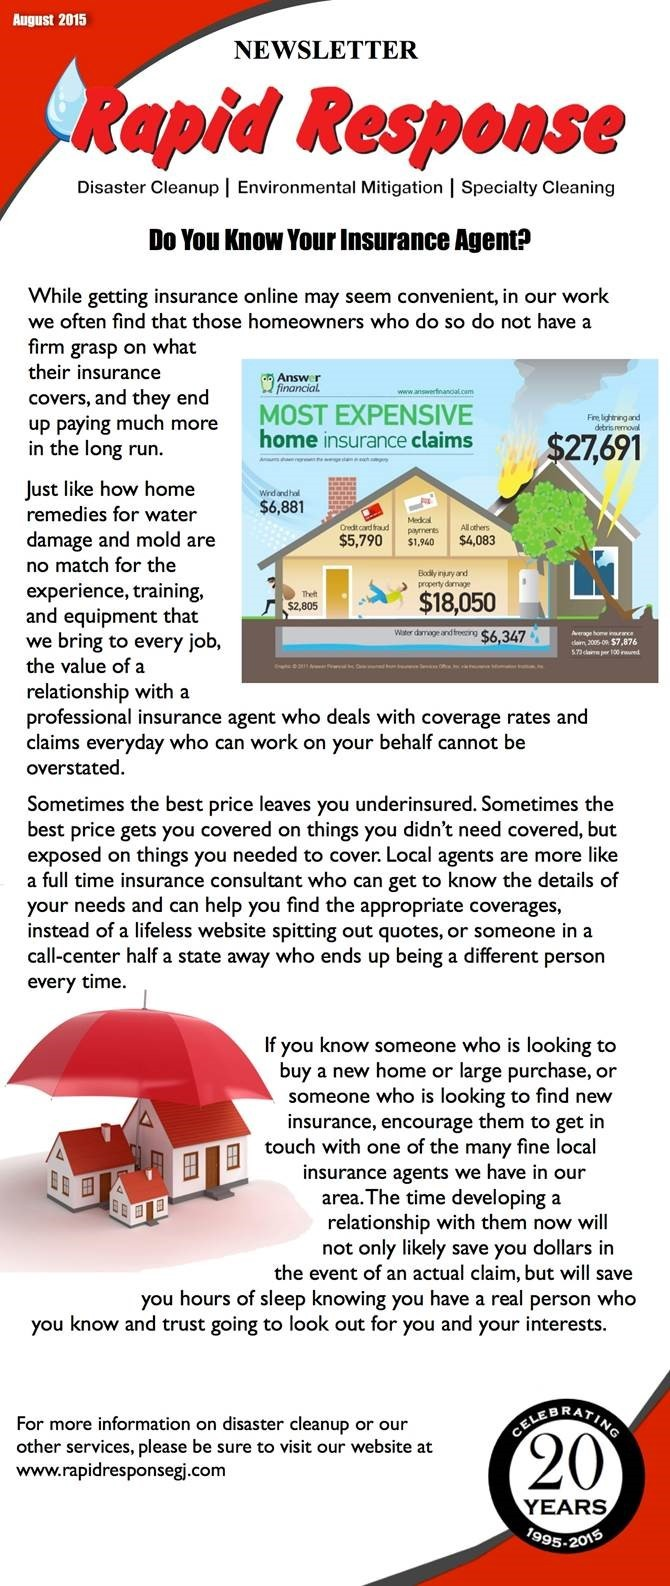 August Newsletter-Do You Know Your Insurance Agent